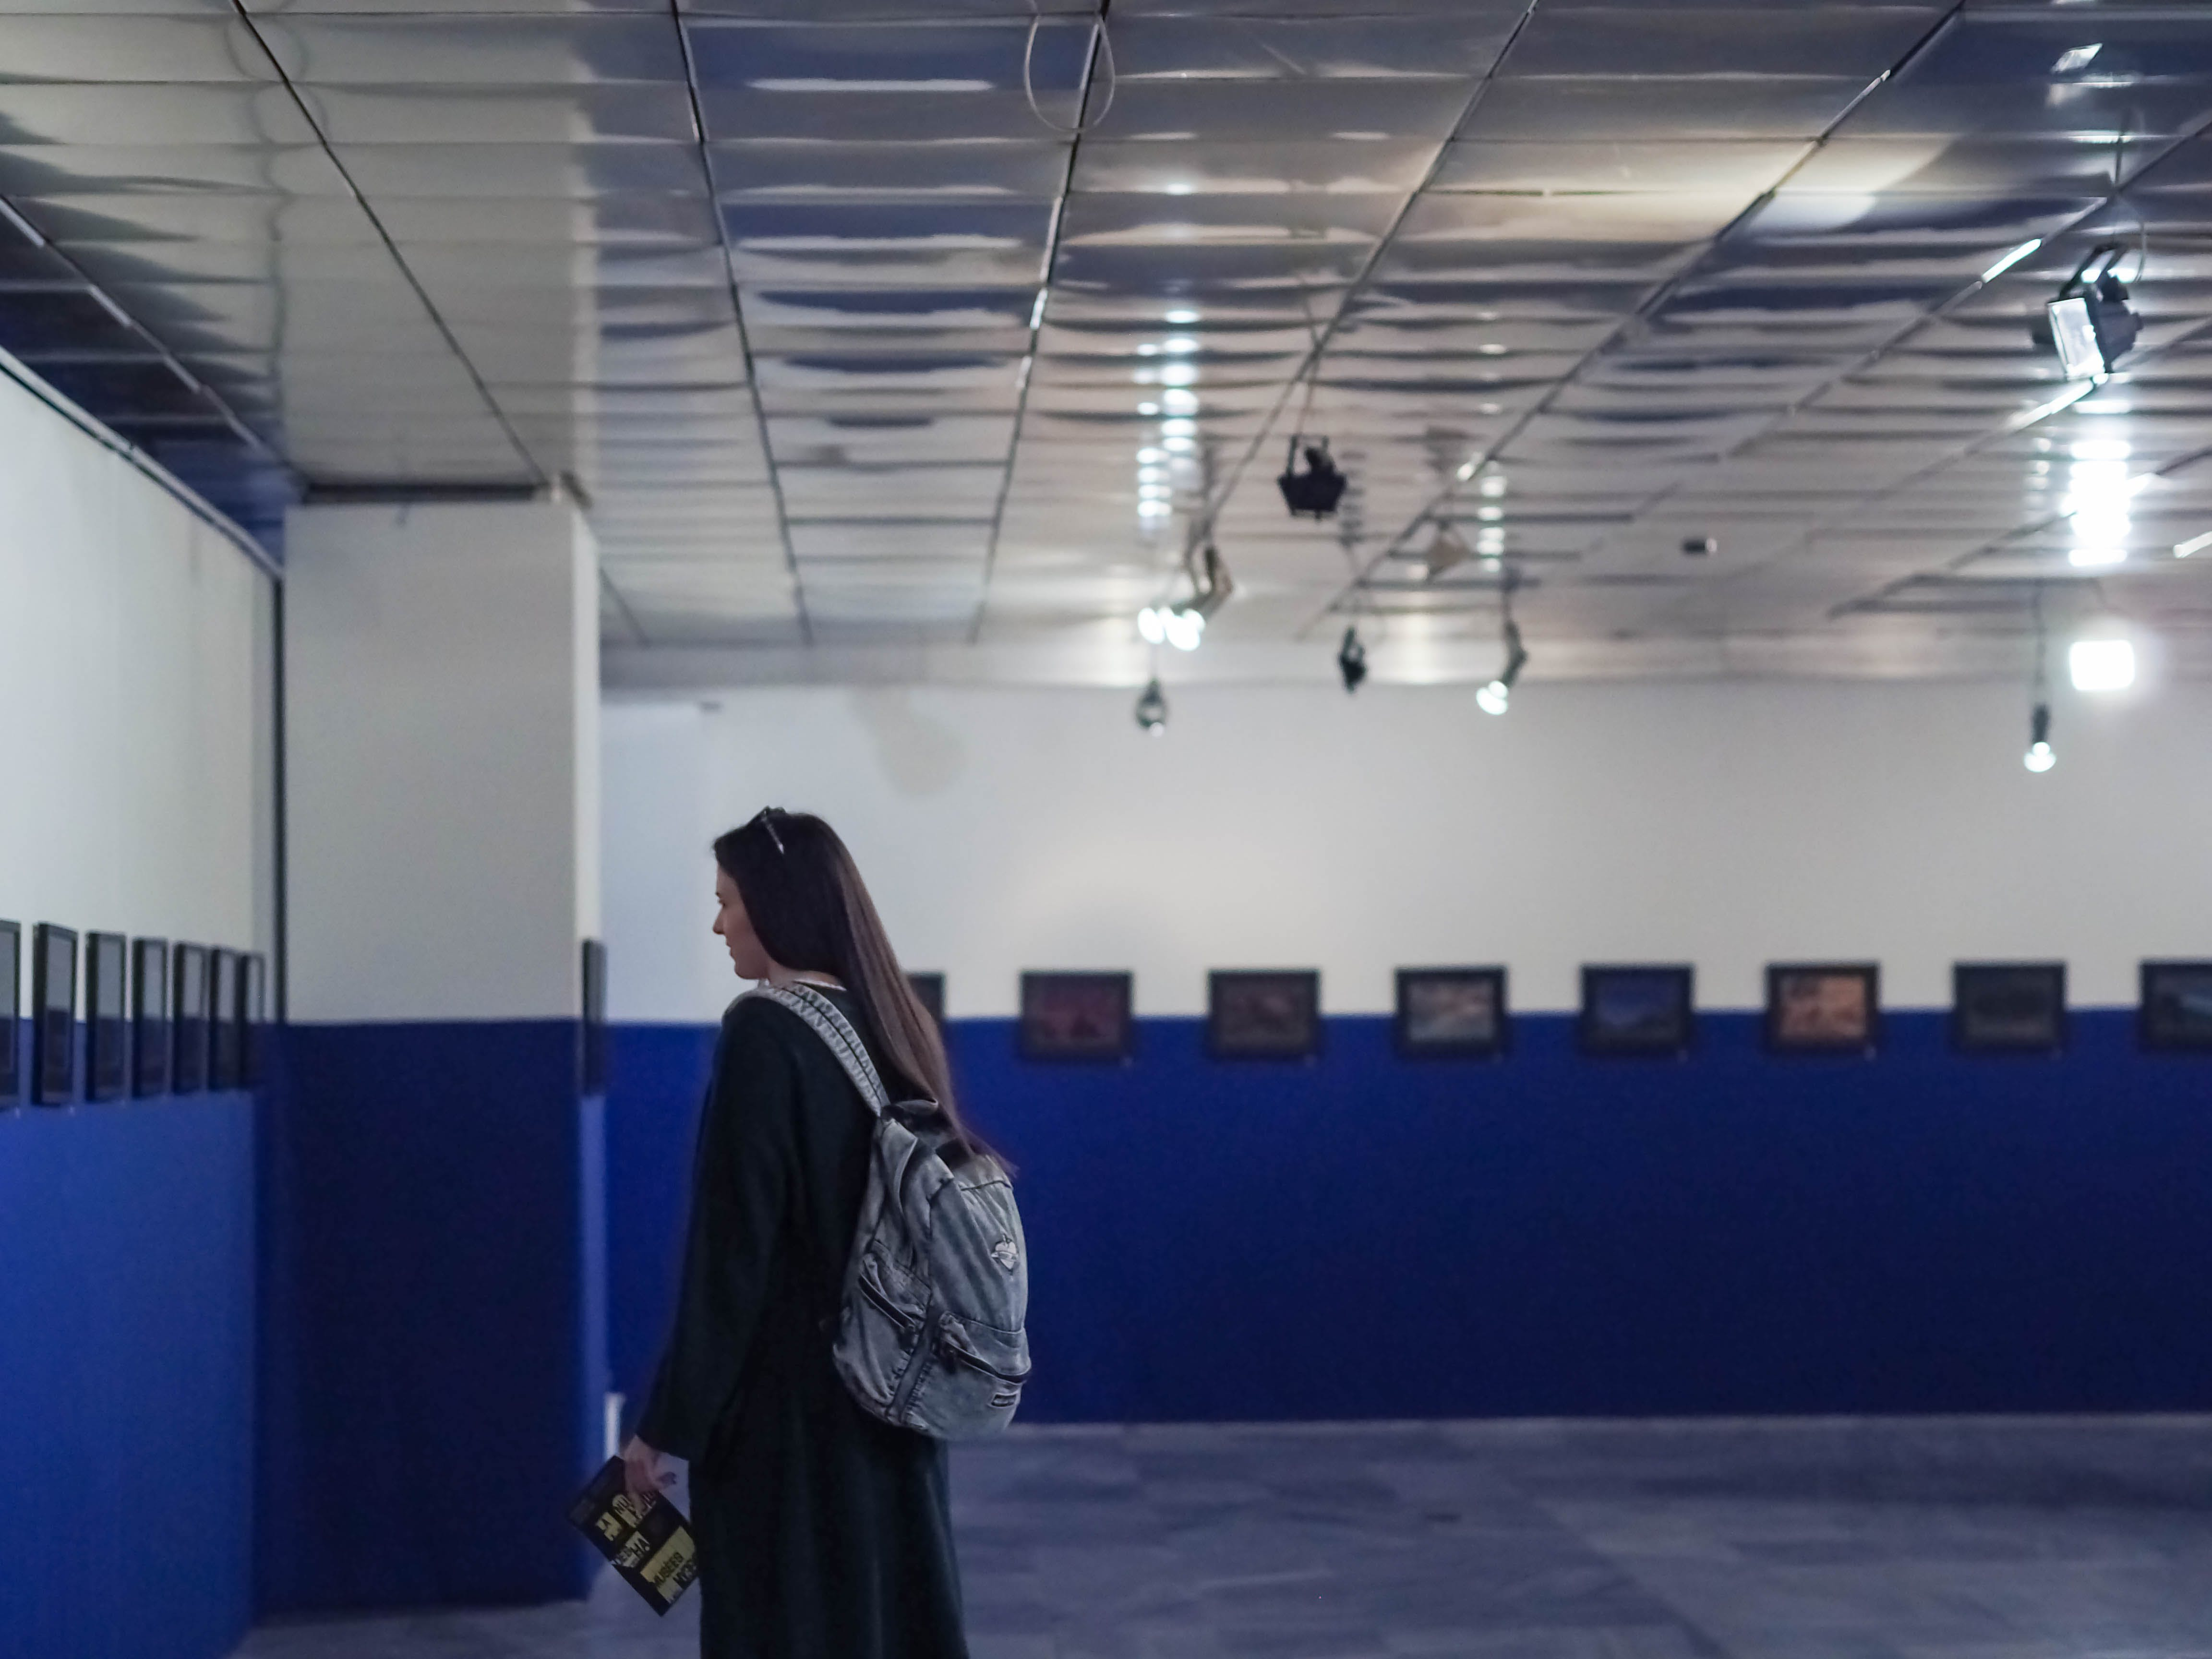 Free stock photo of alone, art, art gallery, backpack